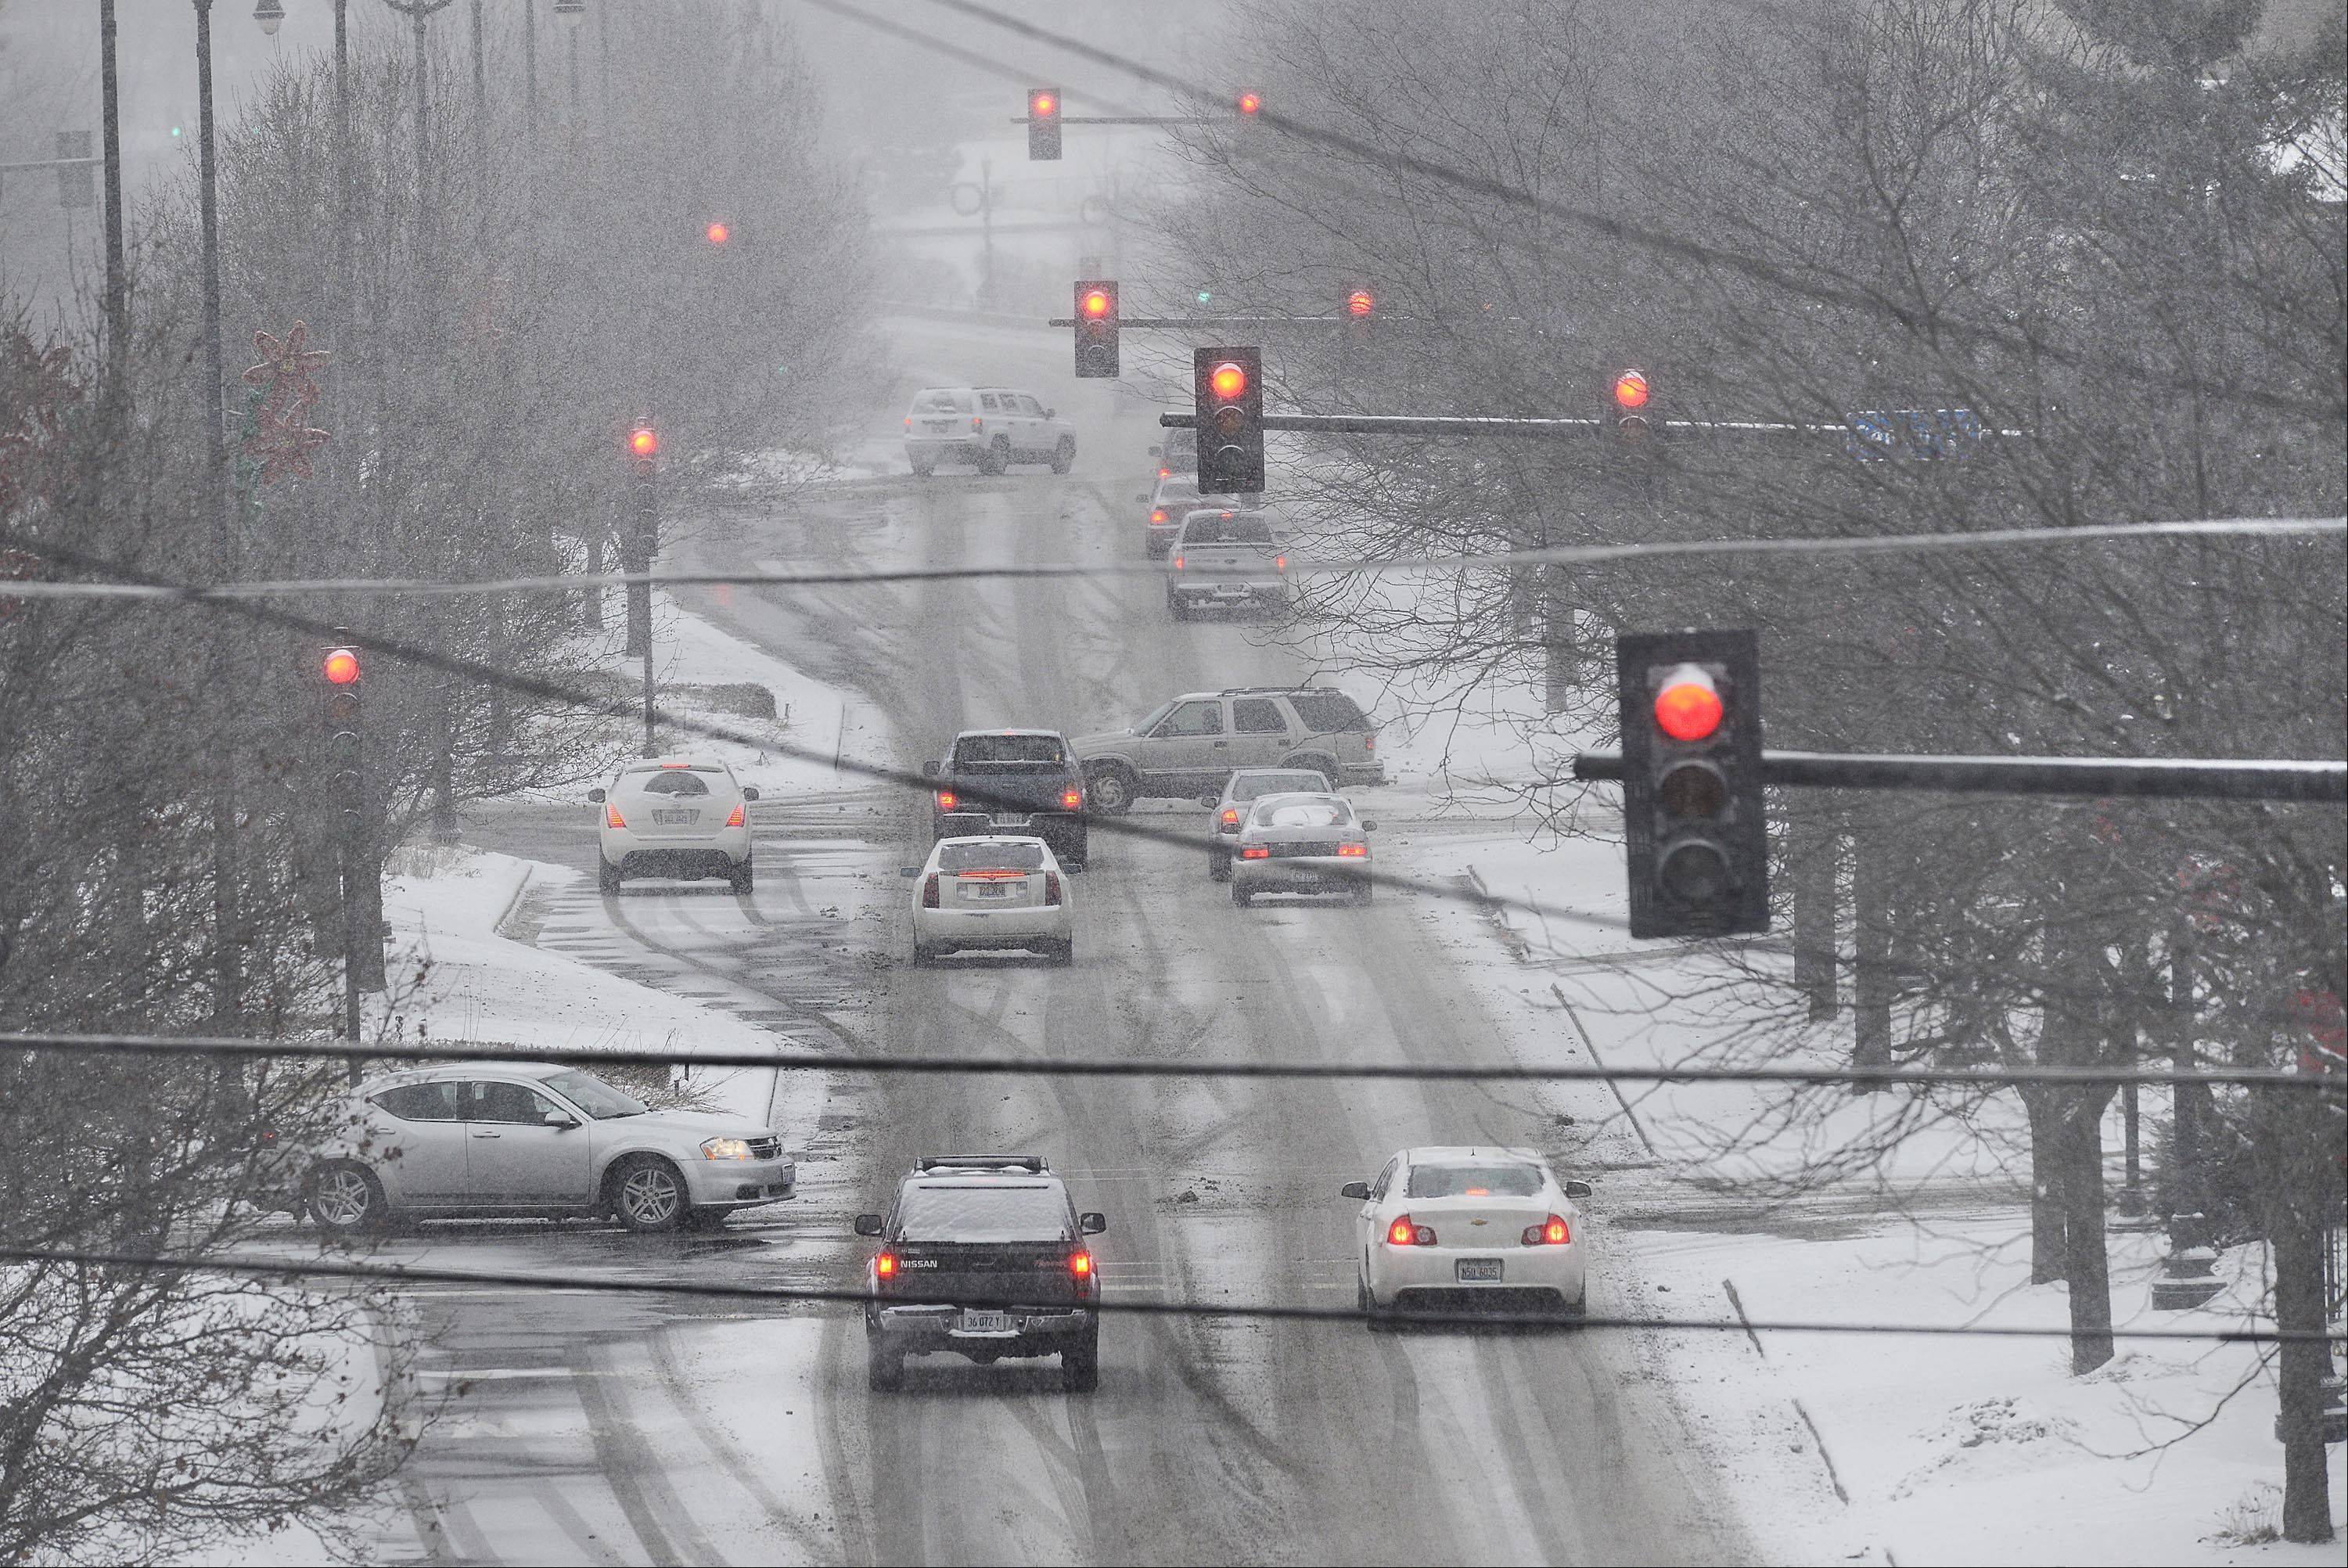 Traffic moves slowly on Kimball Street in Elgin as the incoming snowstorm begins Tuesday afternoon.